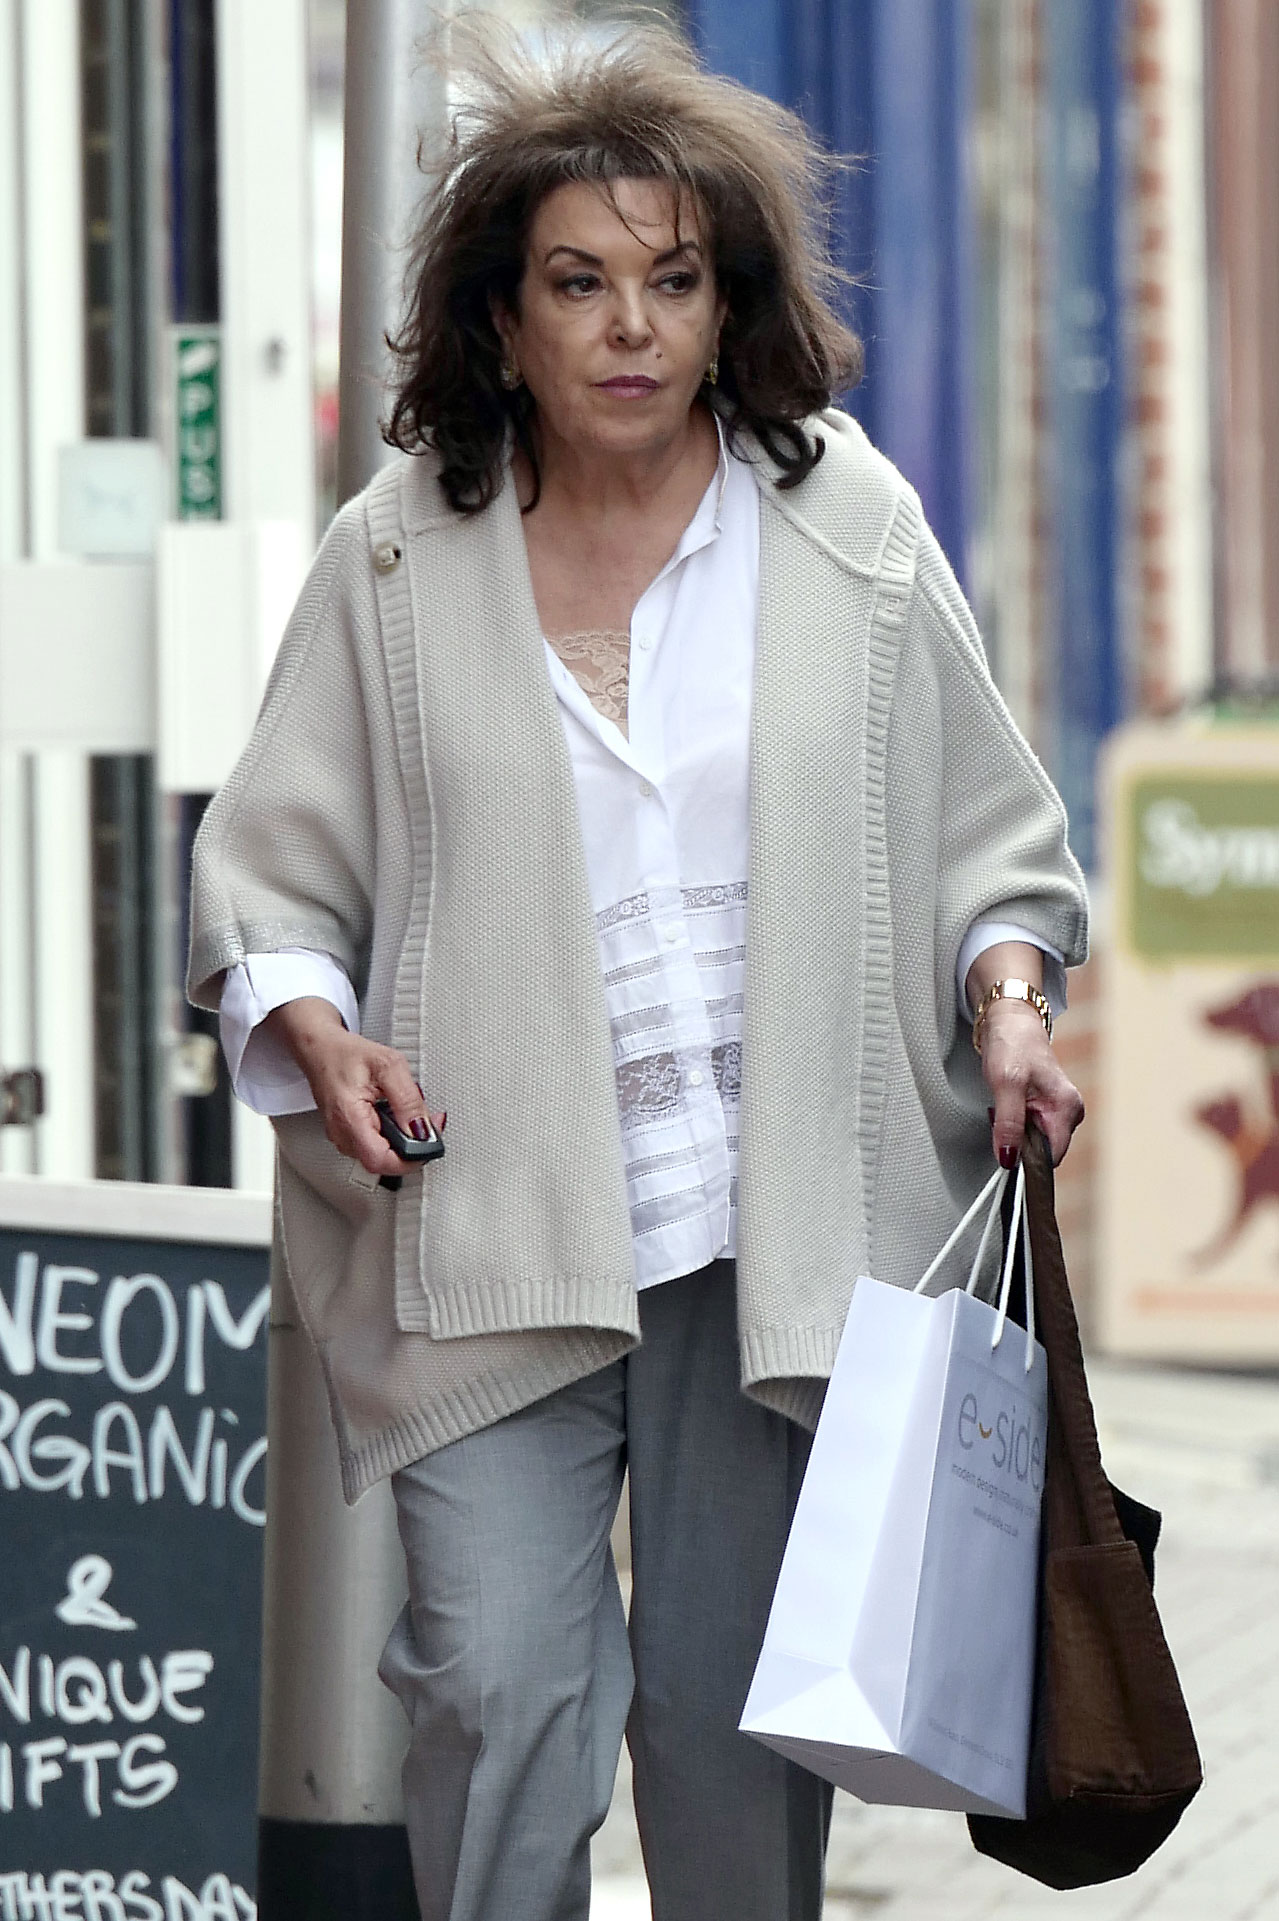 EXCLUSIVE: **PREMIUM EXCLUSIVE RATES APPLY** Amal Clooney's mother Baria Alamuddin is seen out shopping in London on the day it is announced George and Amal have given birth to twins